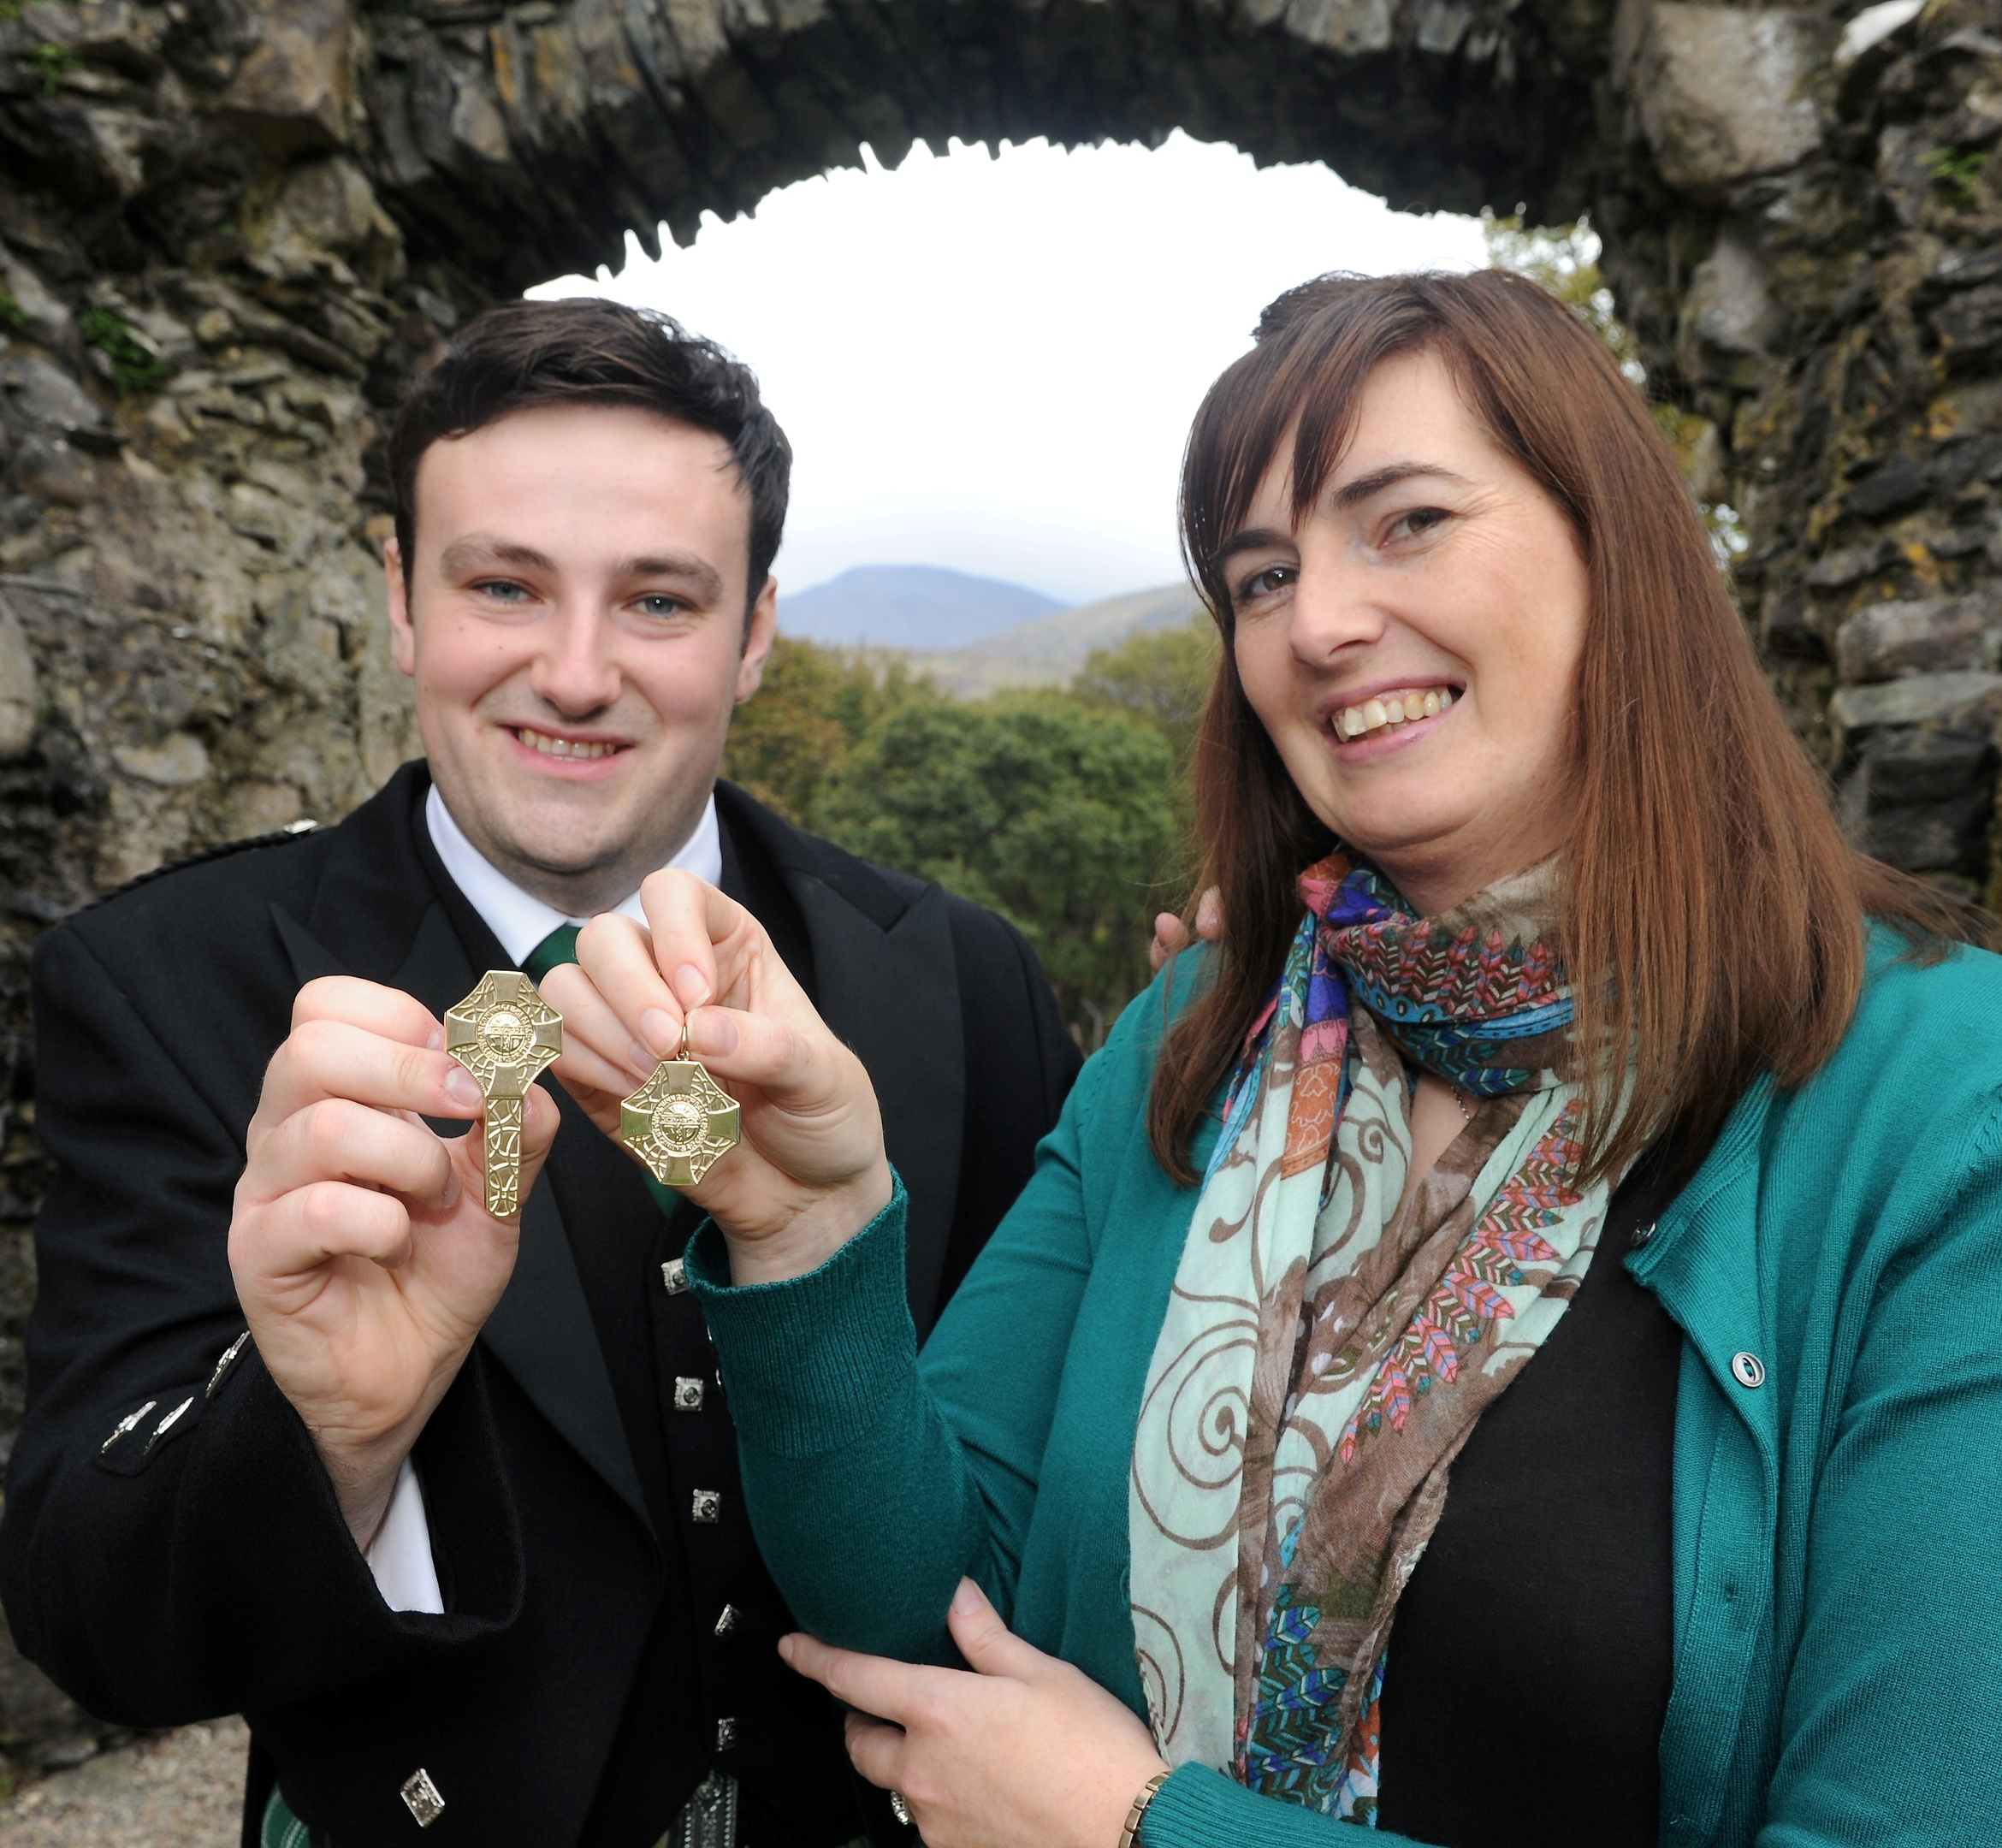 Alasdair MacMuirich of Islay and Rachel Walker of Gairlochy, Lochaber photographed with their awards yesterday in Fort William. Picture by Sandy McCook.